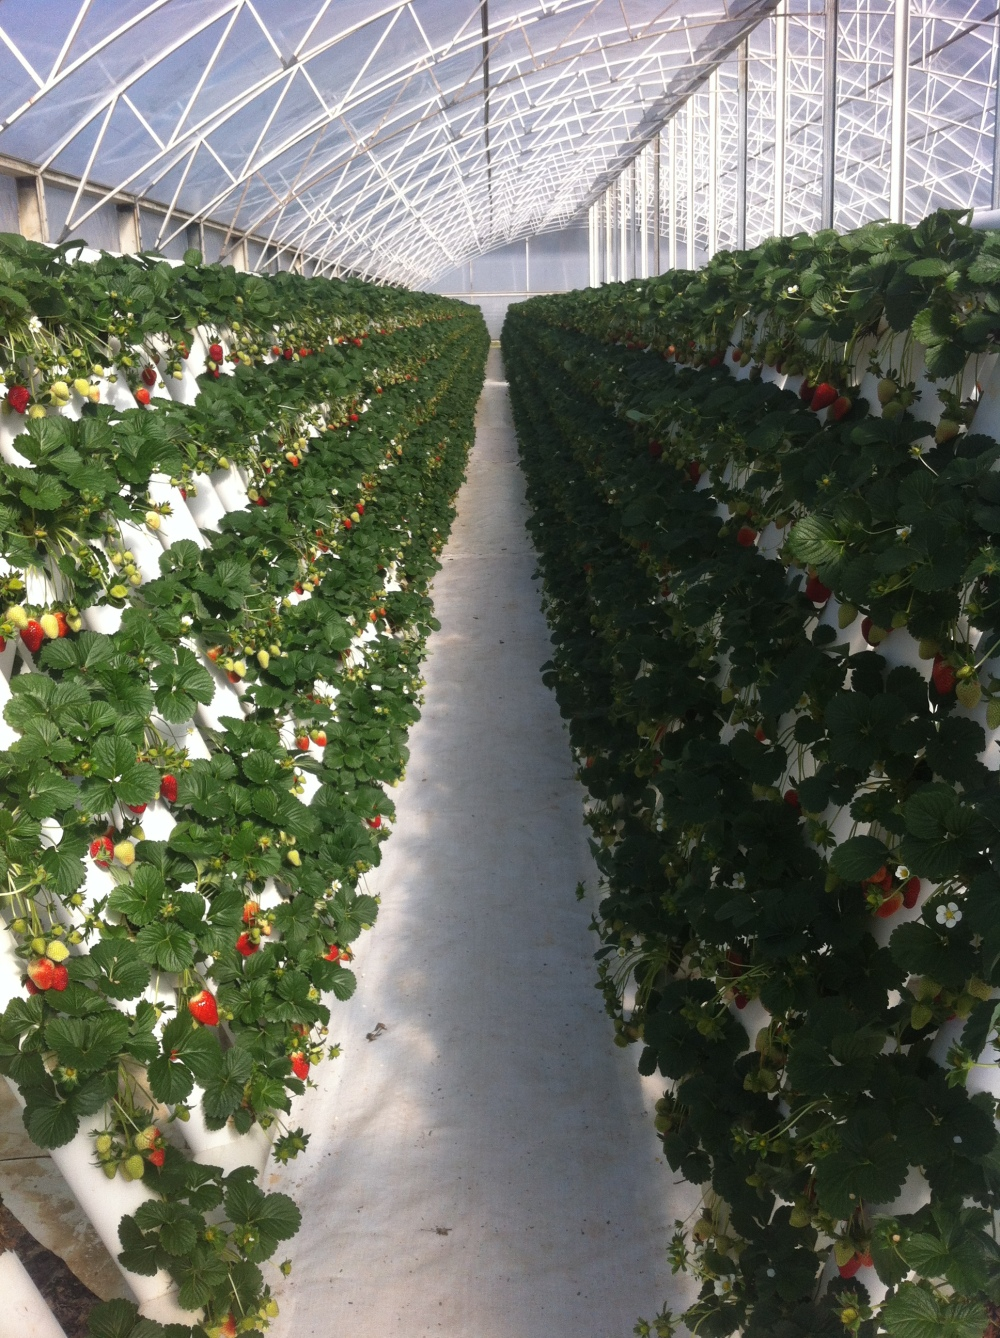 strawberry production in PVC pipes in Port Macquarie